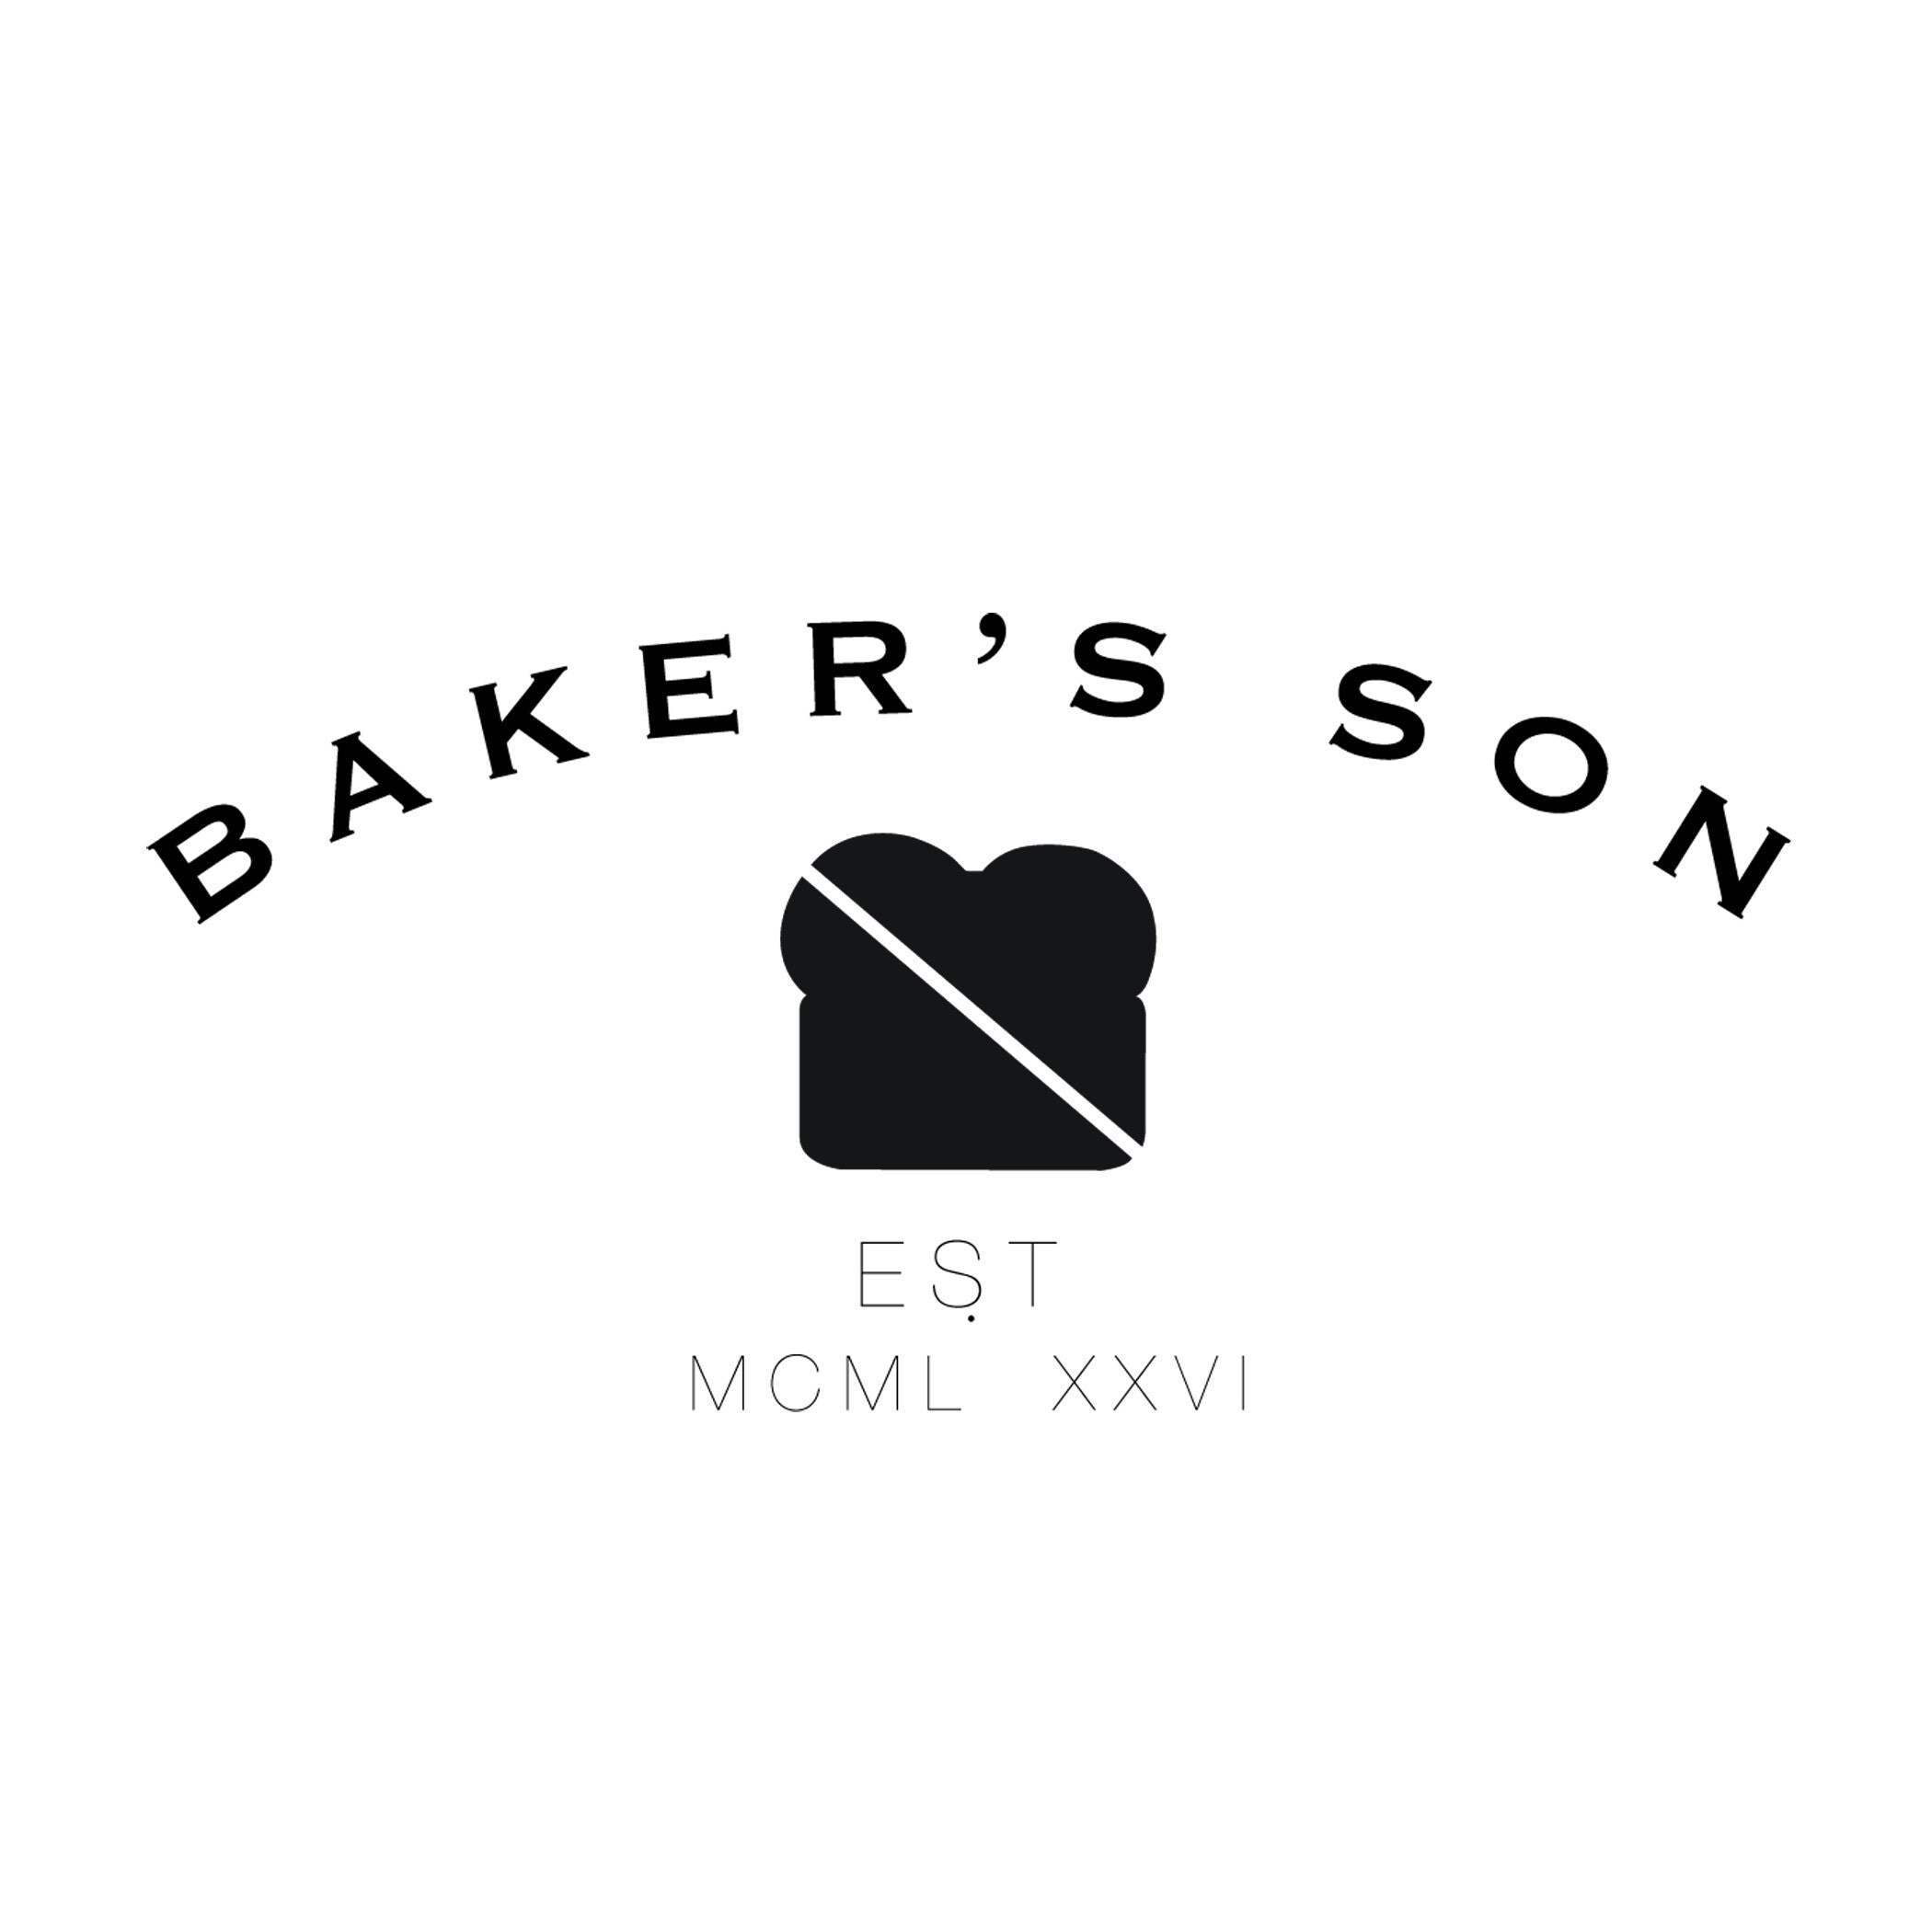 Baker's Son by BakersSon on Etsy